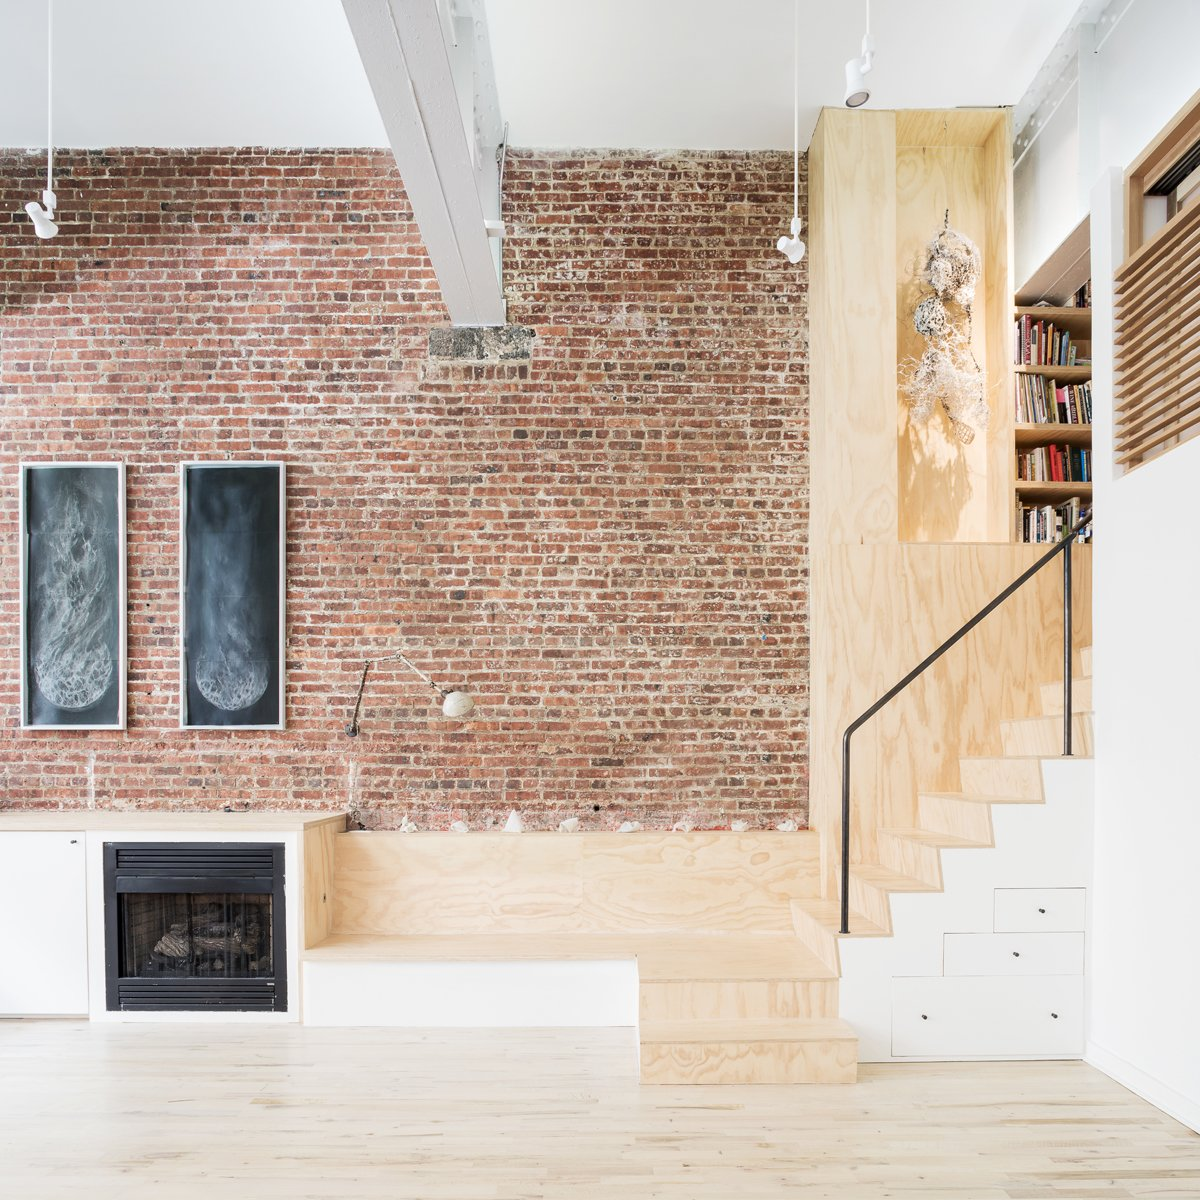 Living Room, Track Lighting, Bench, Accent Lighting, Light Hardwood Floor, and Standard Layout Fireplace Plywood stair and bench seat adjacent to fireplace  Wells Fargo Loft by Jeff Jordan Architects